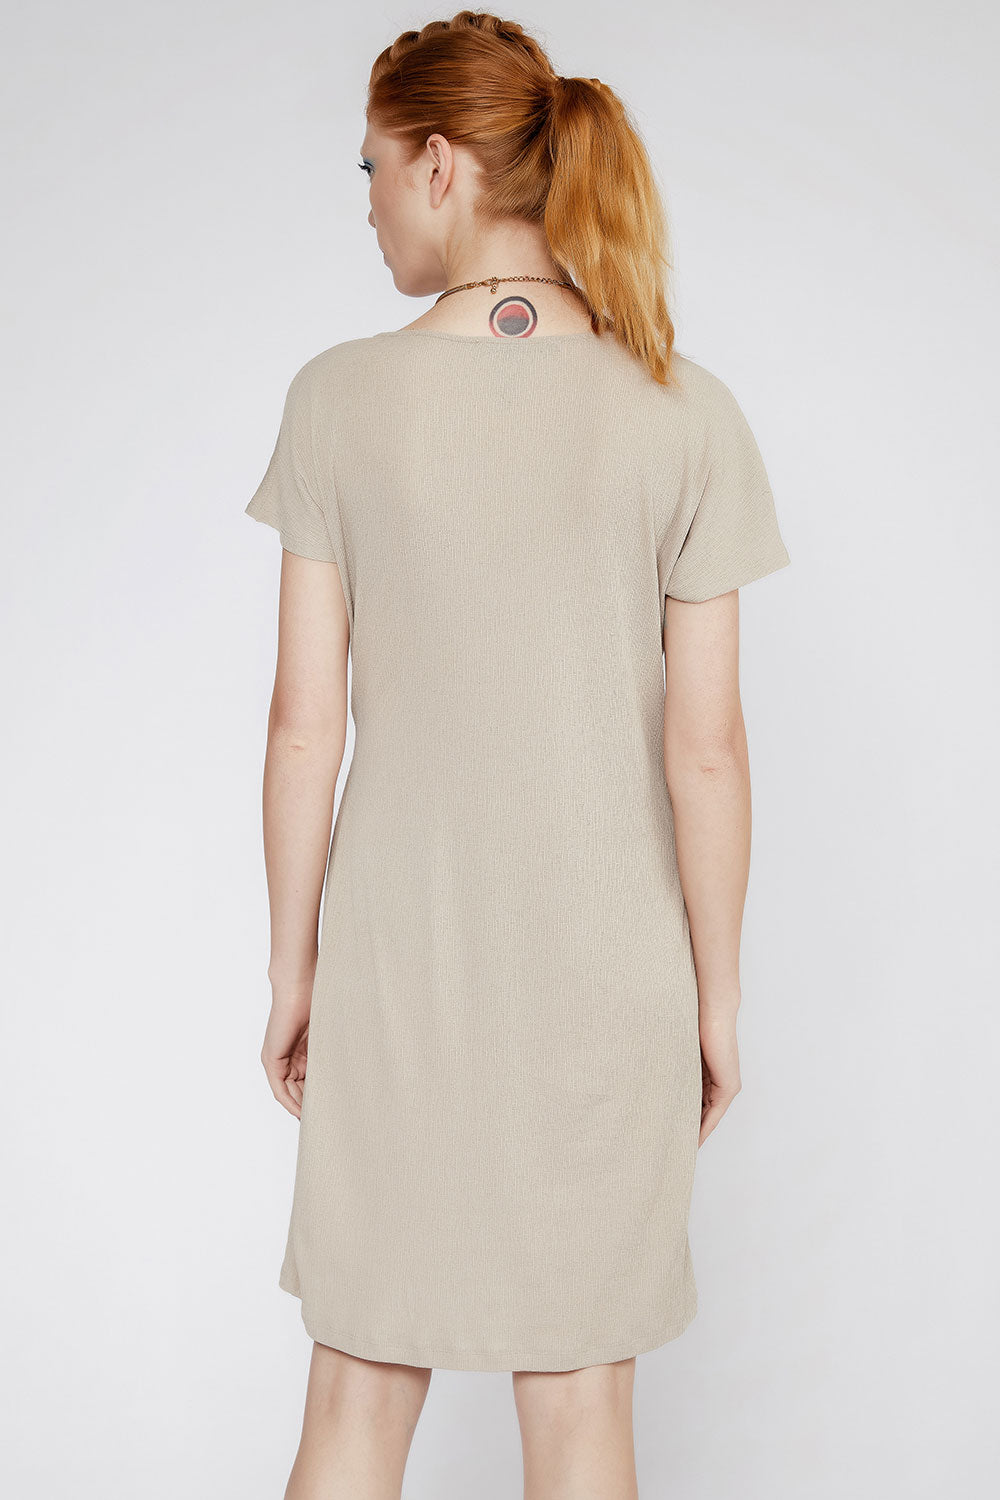 En Beige- Side Tie Dress